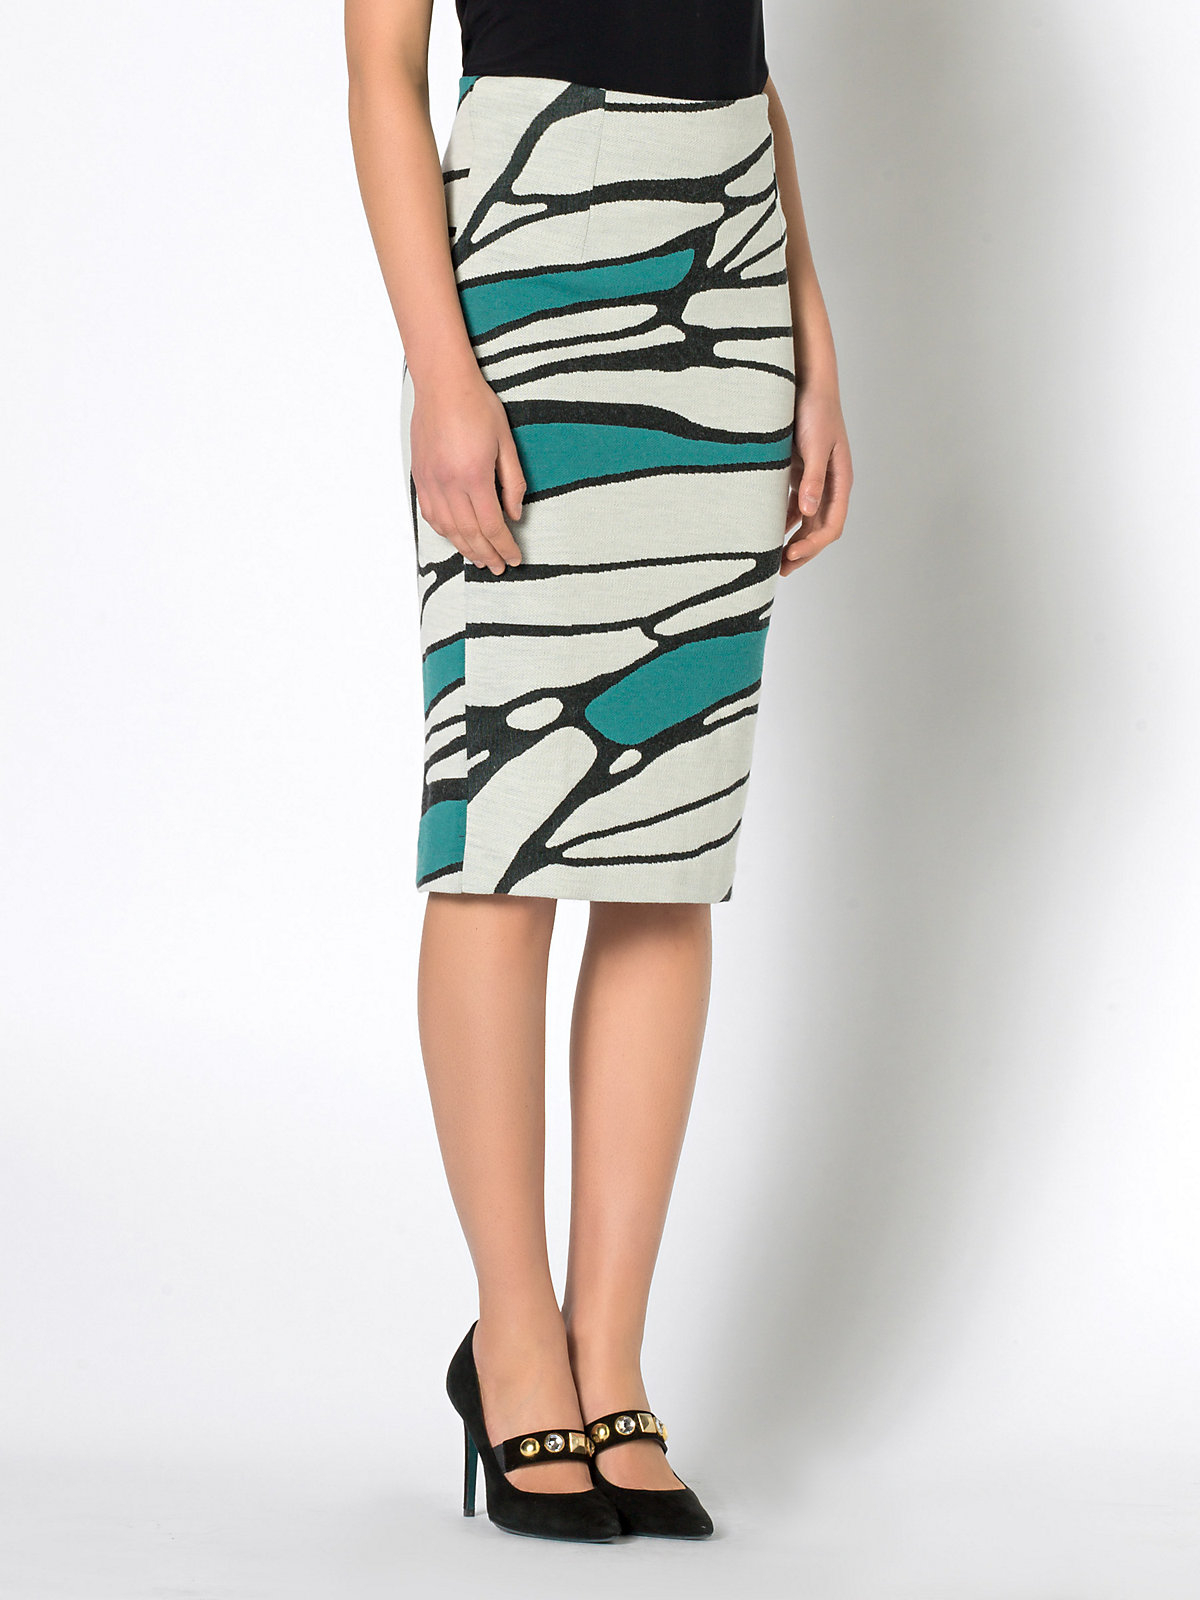 patrizia pepe high waisted pencil skirt in fancy textured